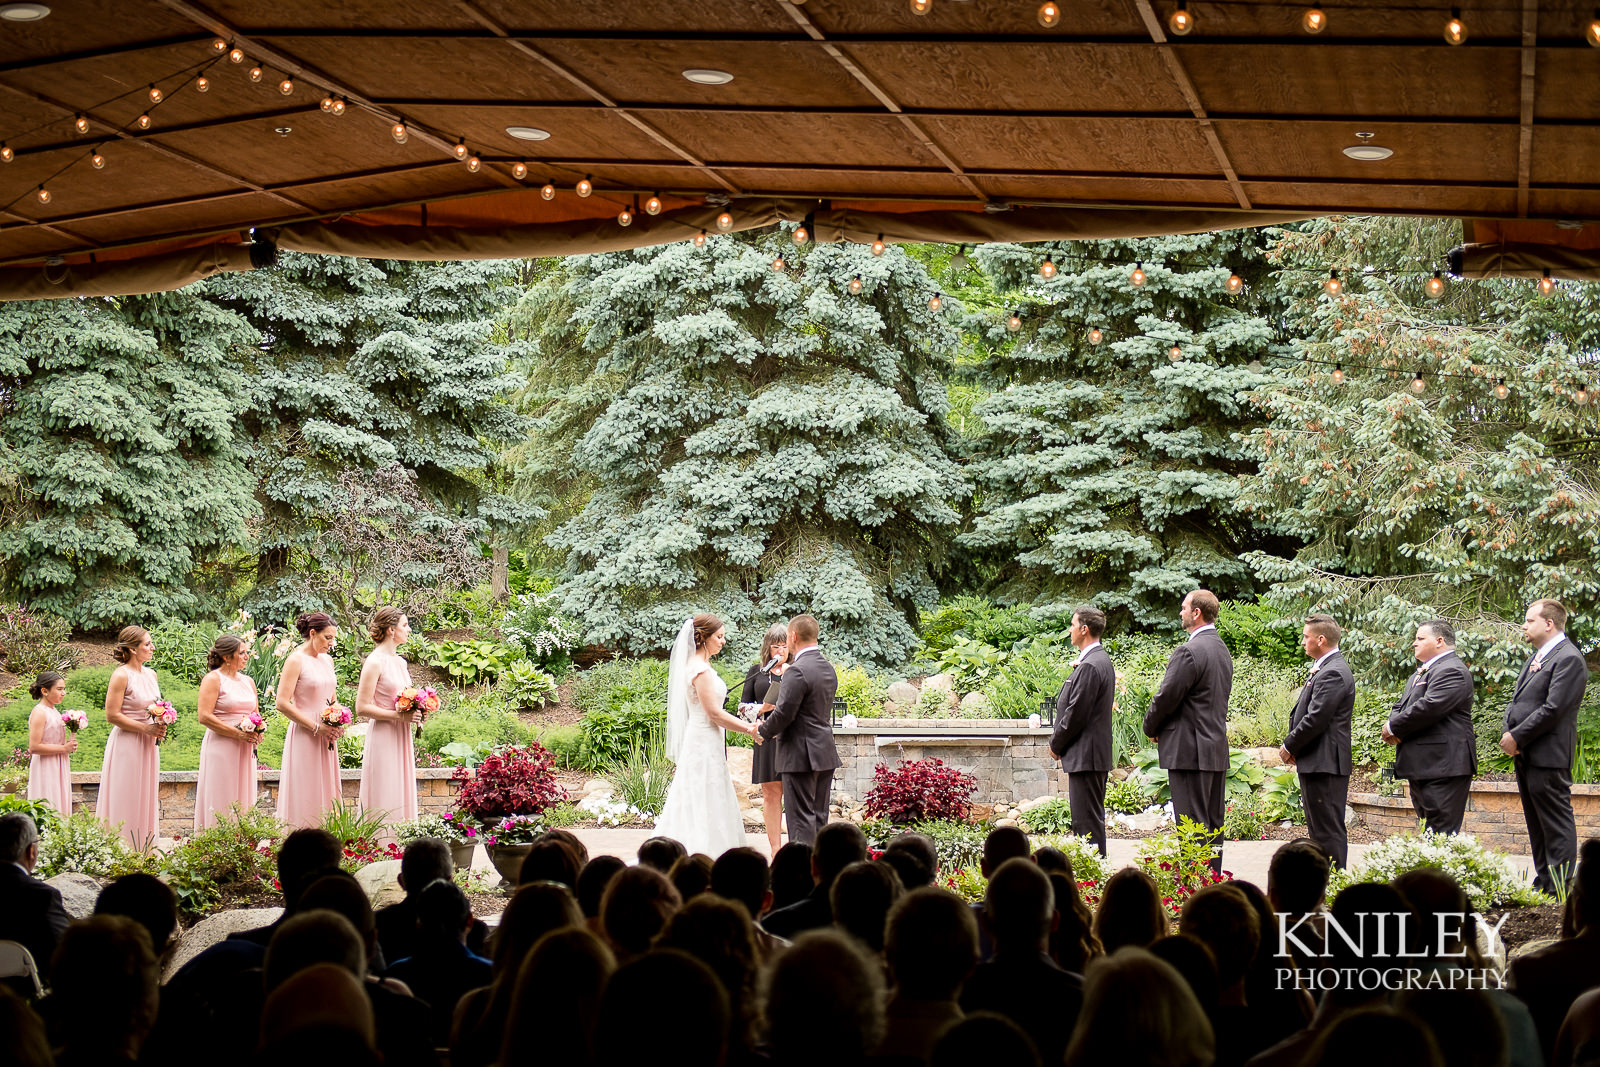 053 - Ravenwood Golf Club wedding pictures - Rochester NY - Kniley Photography - XT2B0910.jpg